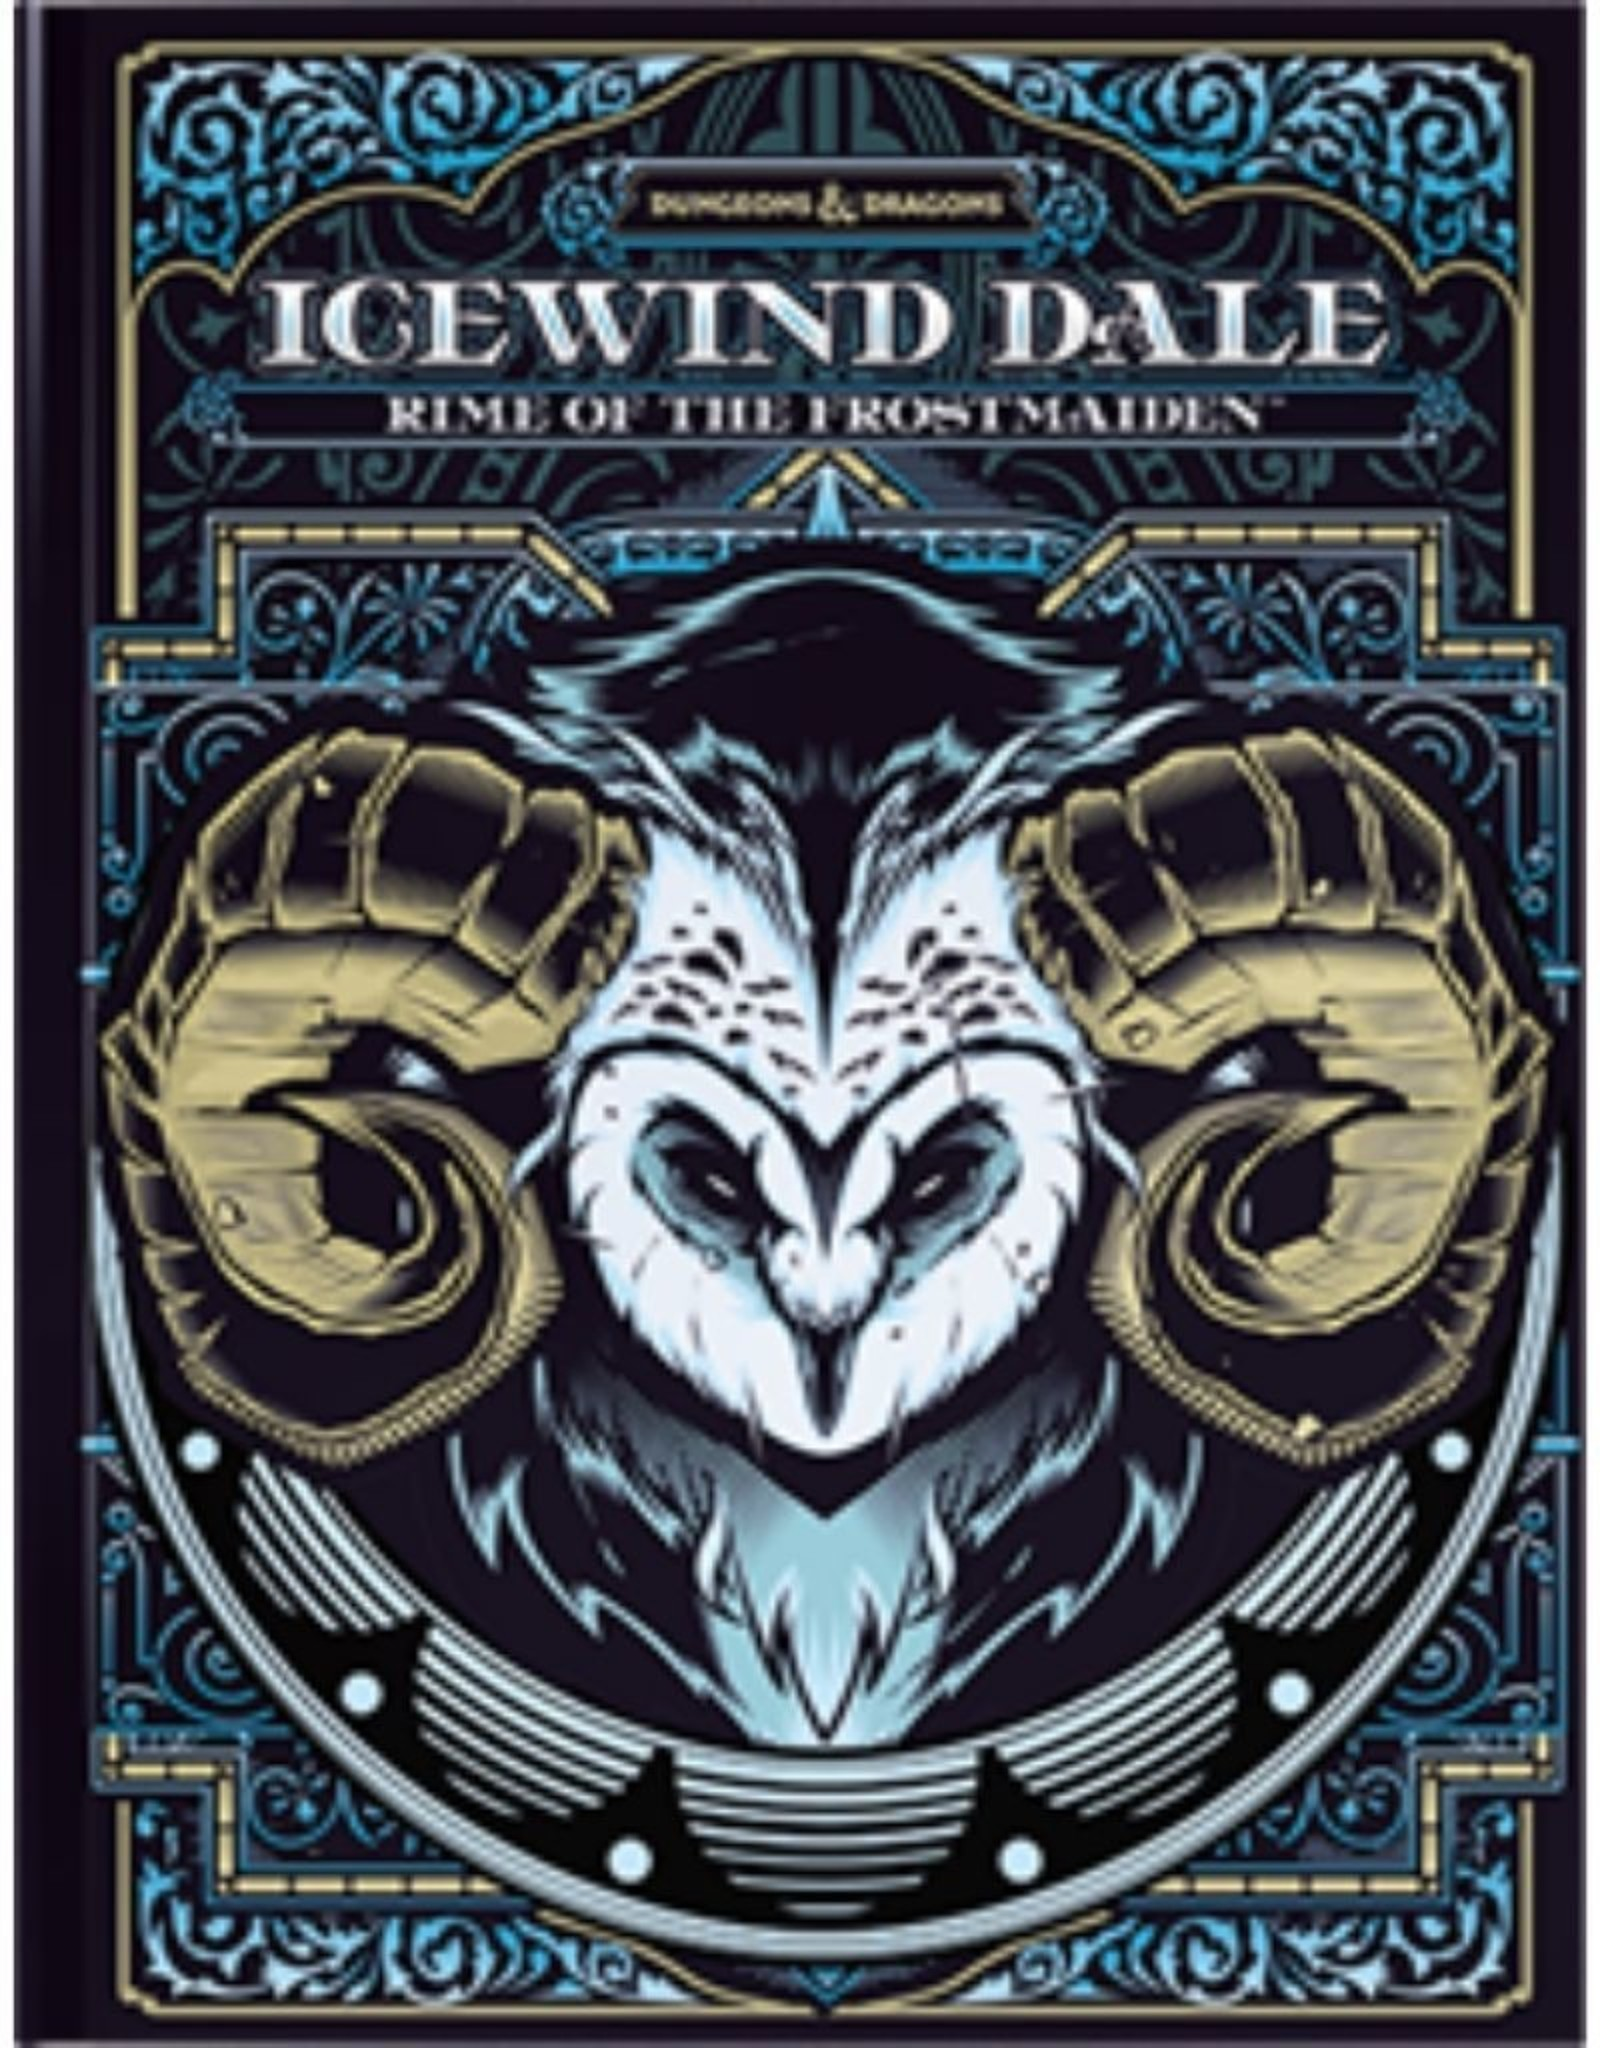 Wizards of the Coast Icewind Dale: Rime of the Frostmaiden (Ltd)